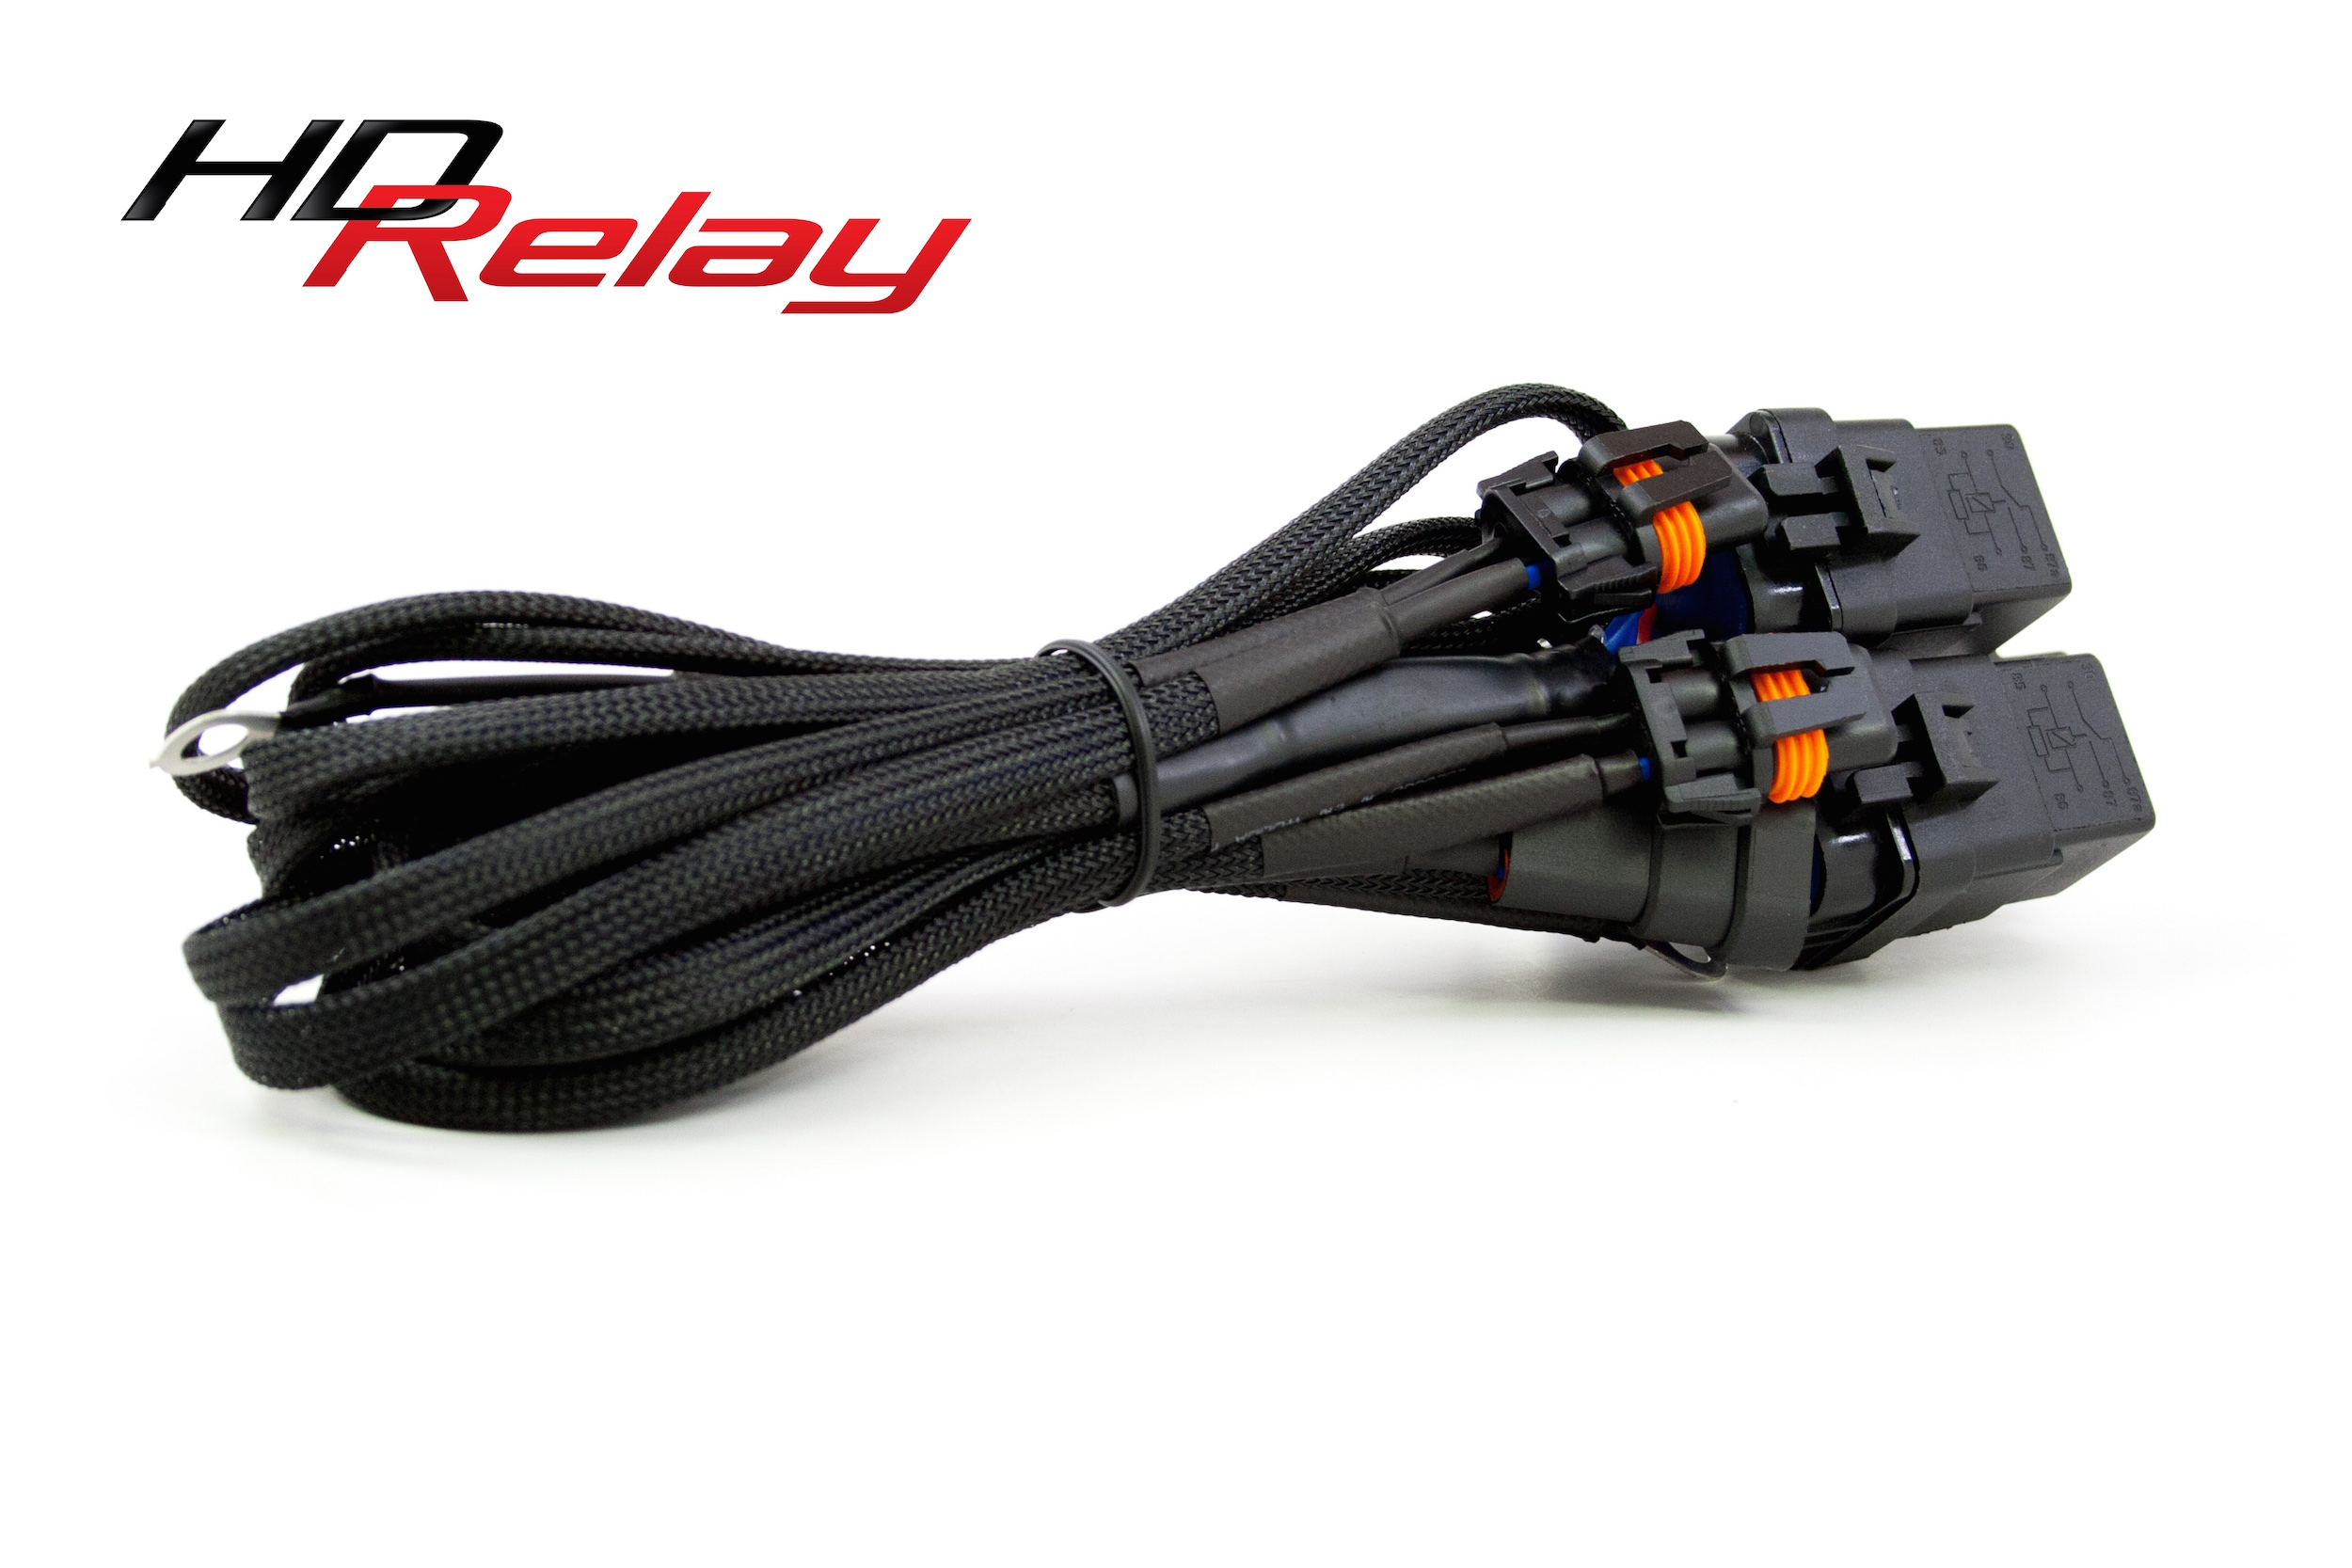 Morimoto Relay Wire Harness Ultra Hid Lighting Wiring Kits Accessories